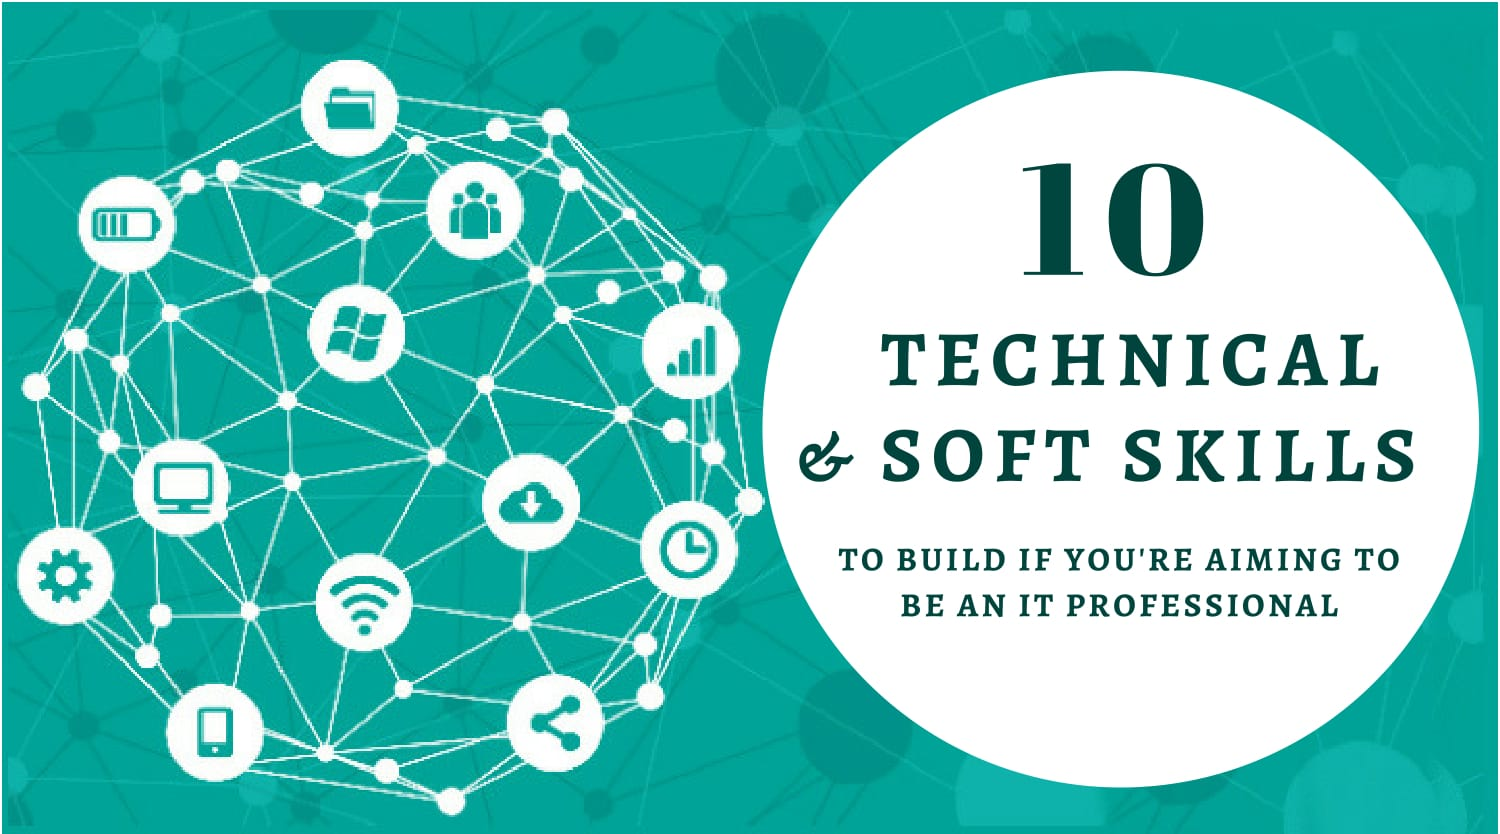 10 Technical and Soft Skills to Build if you are Aiming to be an IT Professional - Image 1